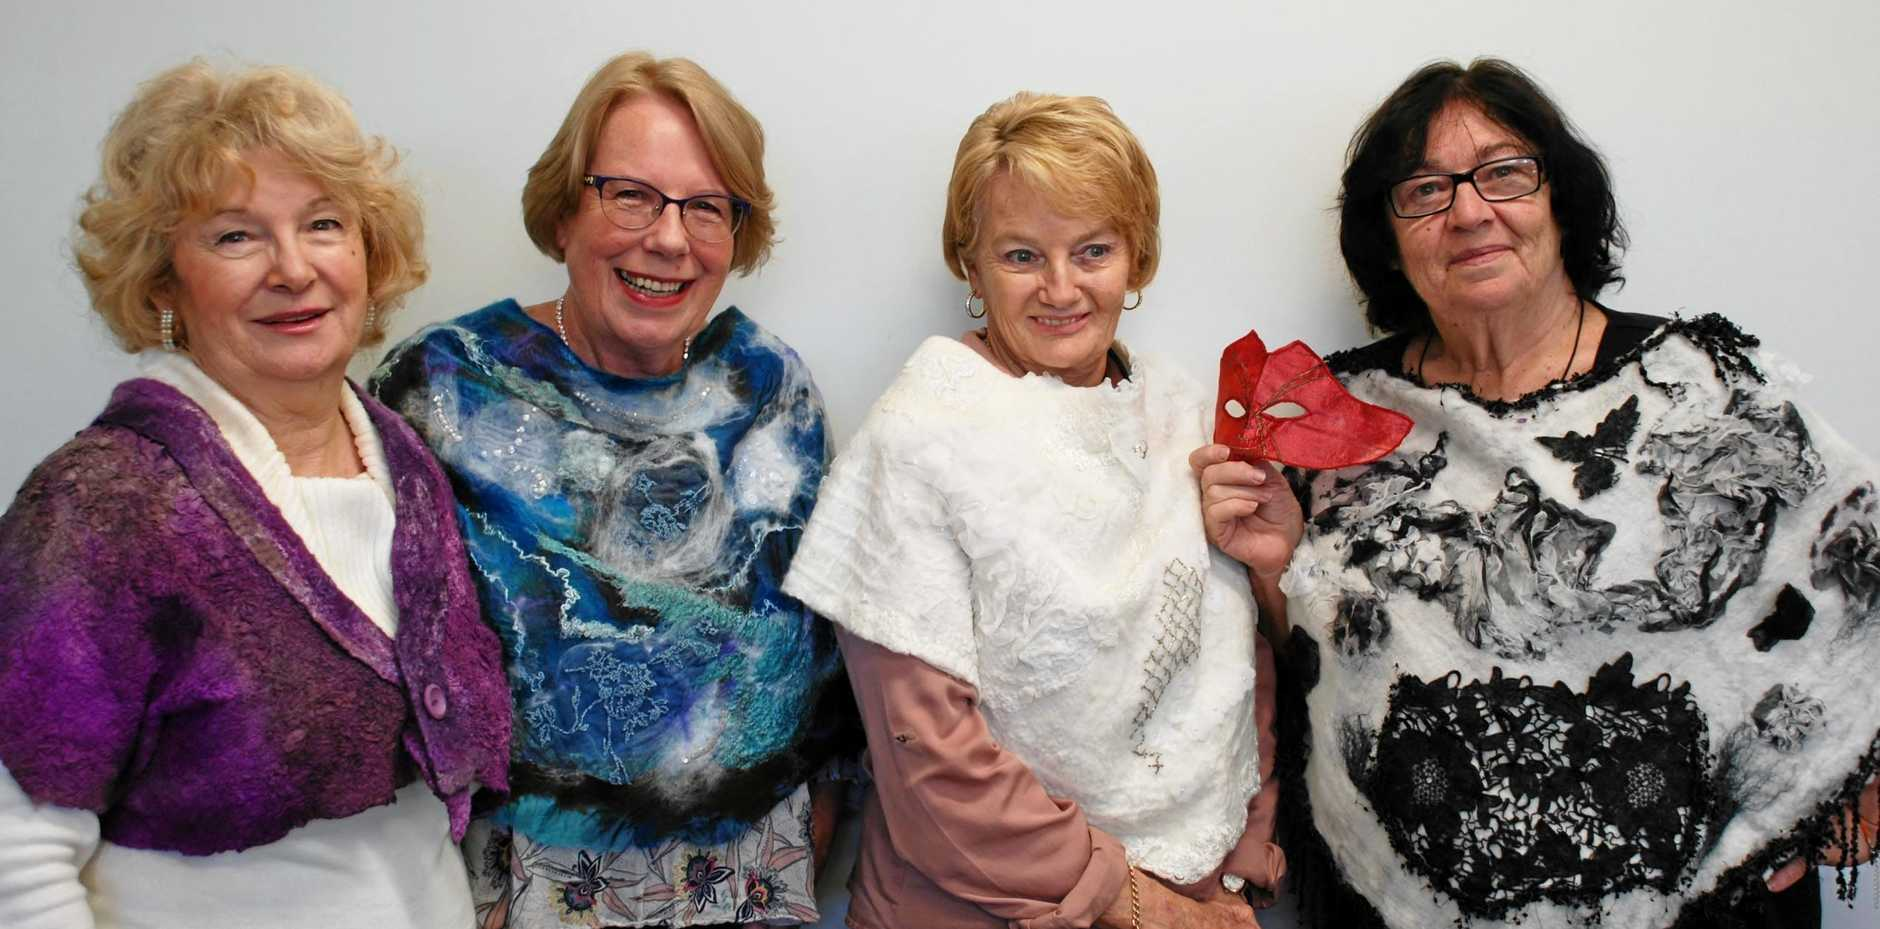 WILD ABOUT TEXTILES: Patti McCandless, Helen Basch, Eileen Taylor, Mitzi Ruzicka show off their felted capelets, just some of the many diverse pieces on show as part of the Wild Women Textile Journeys through Colour, Stitch and Texture exhibition at Robina Community Centre Art Gallery from September 12-23.